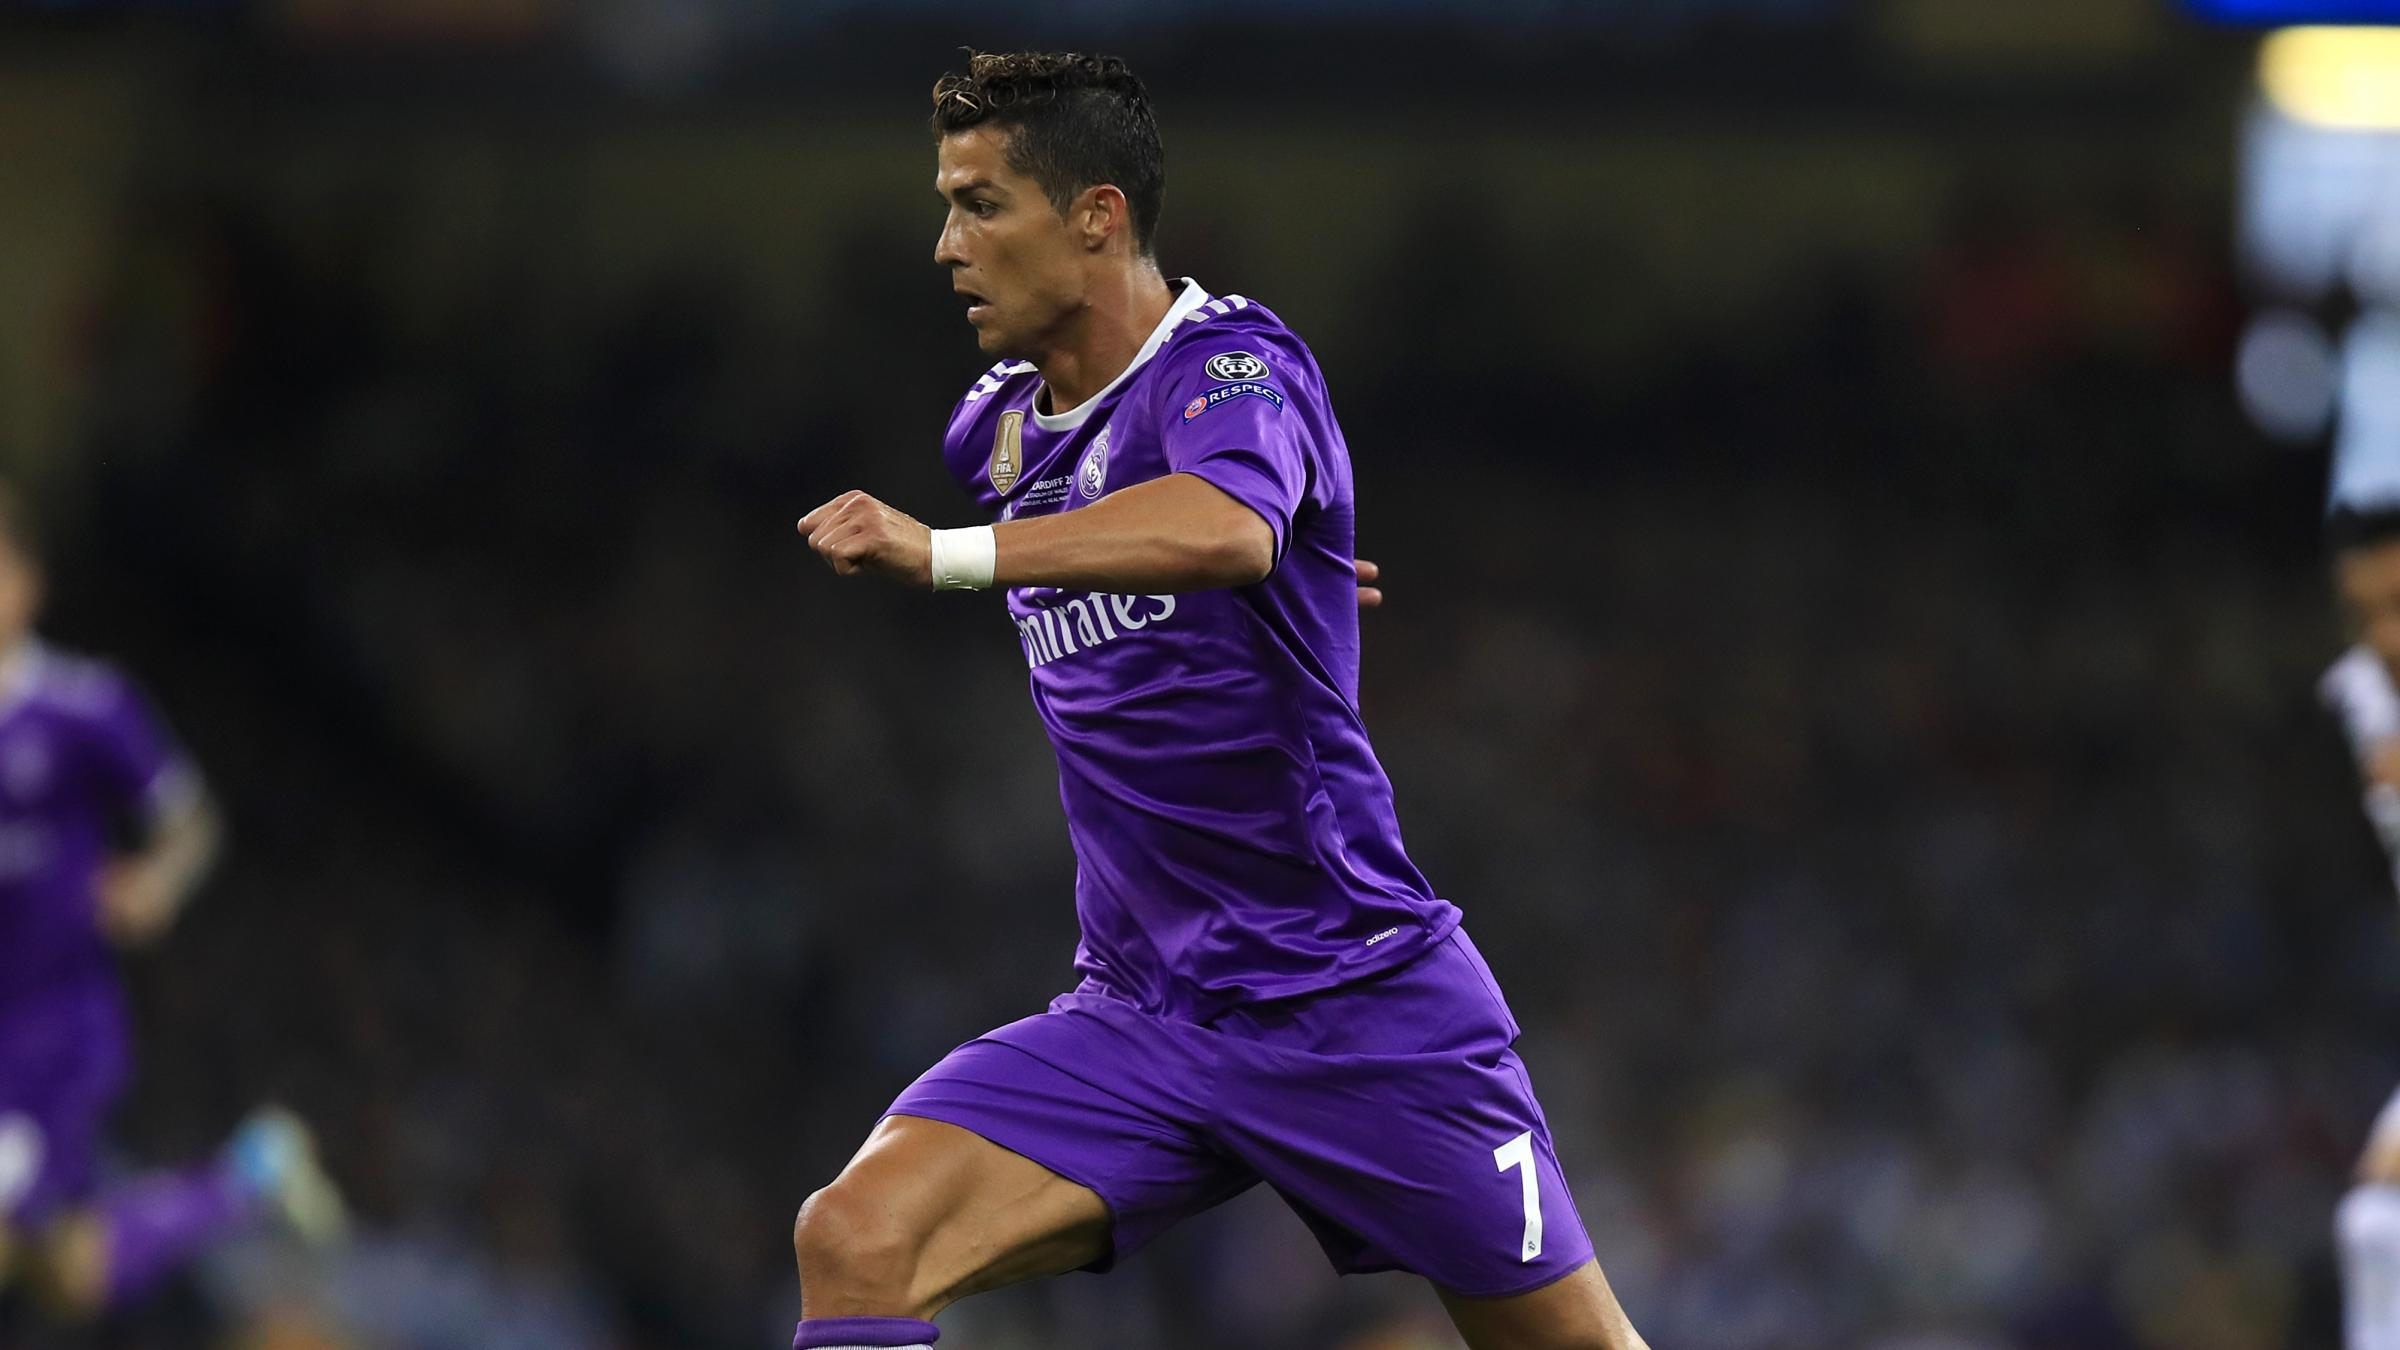 Real Madrid defends Ronaldo after tax evasion accusation